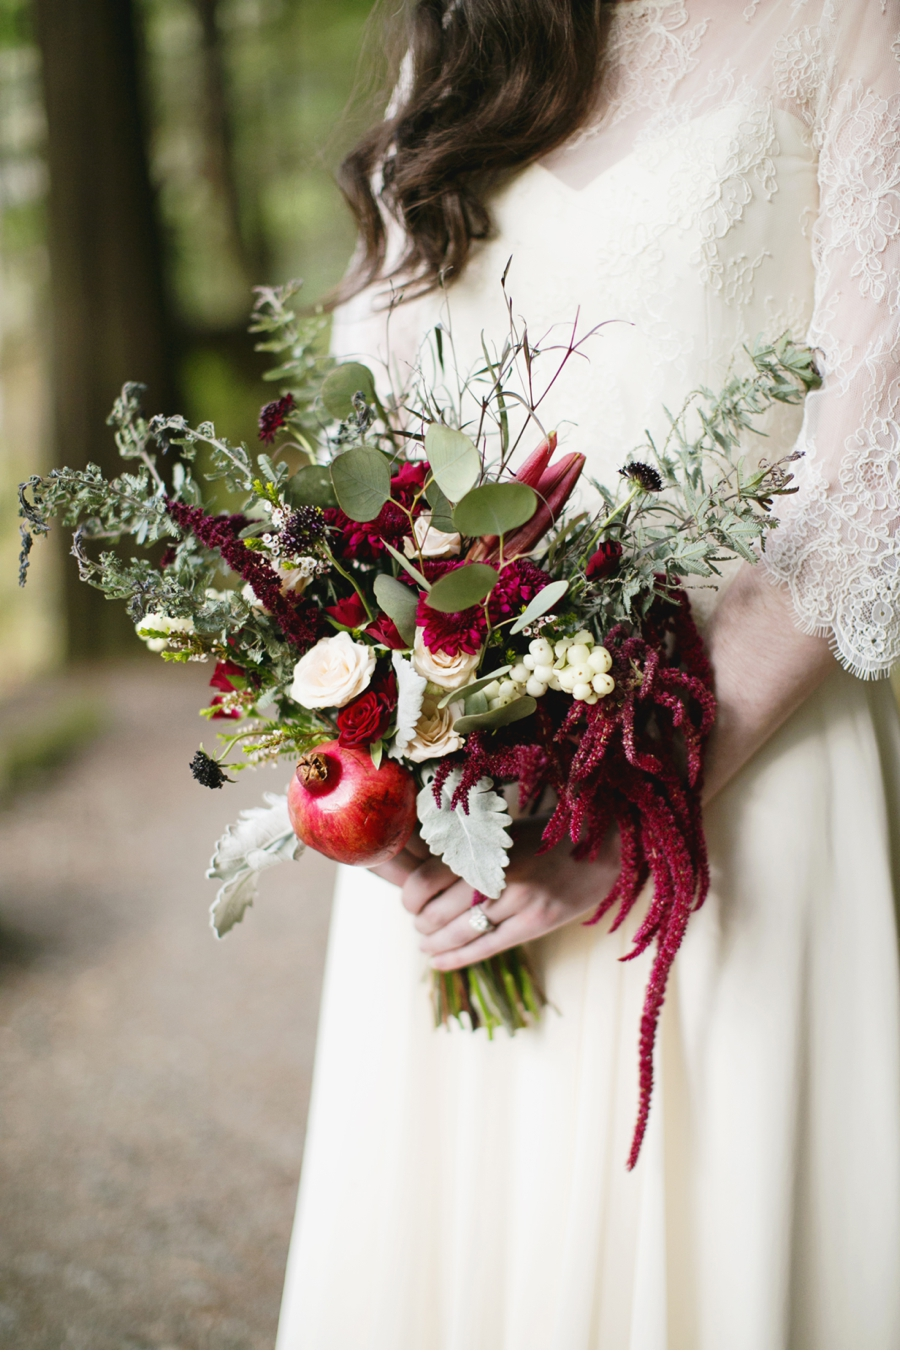 Festive-Holiday-Bouquet